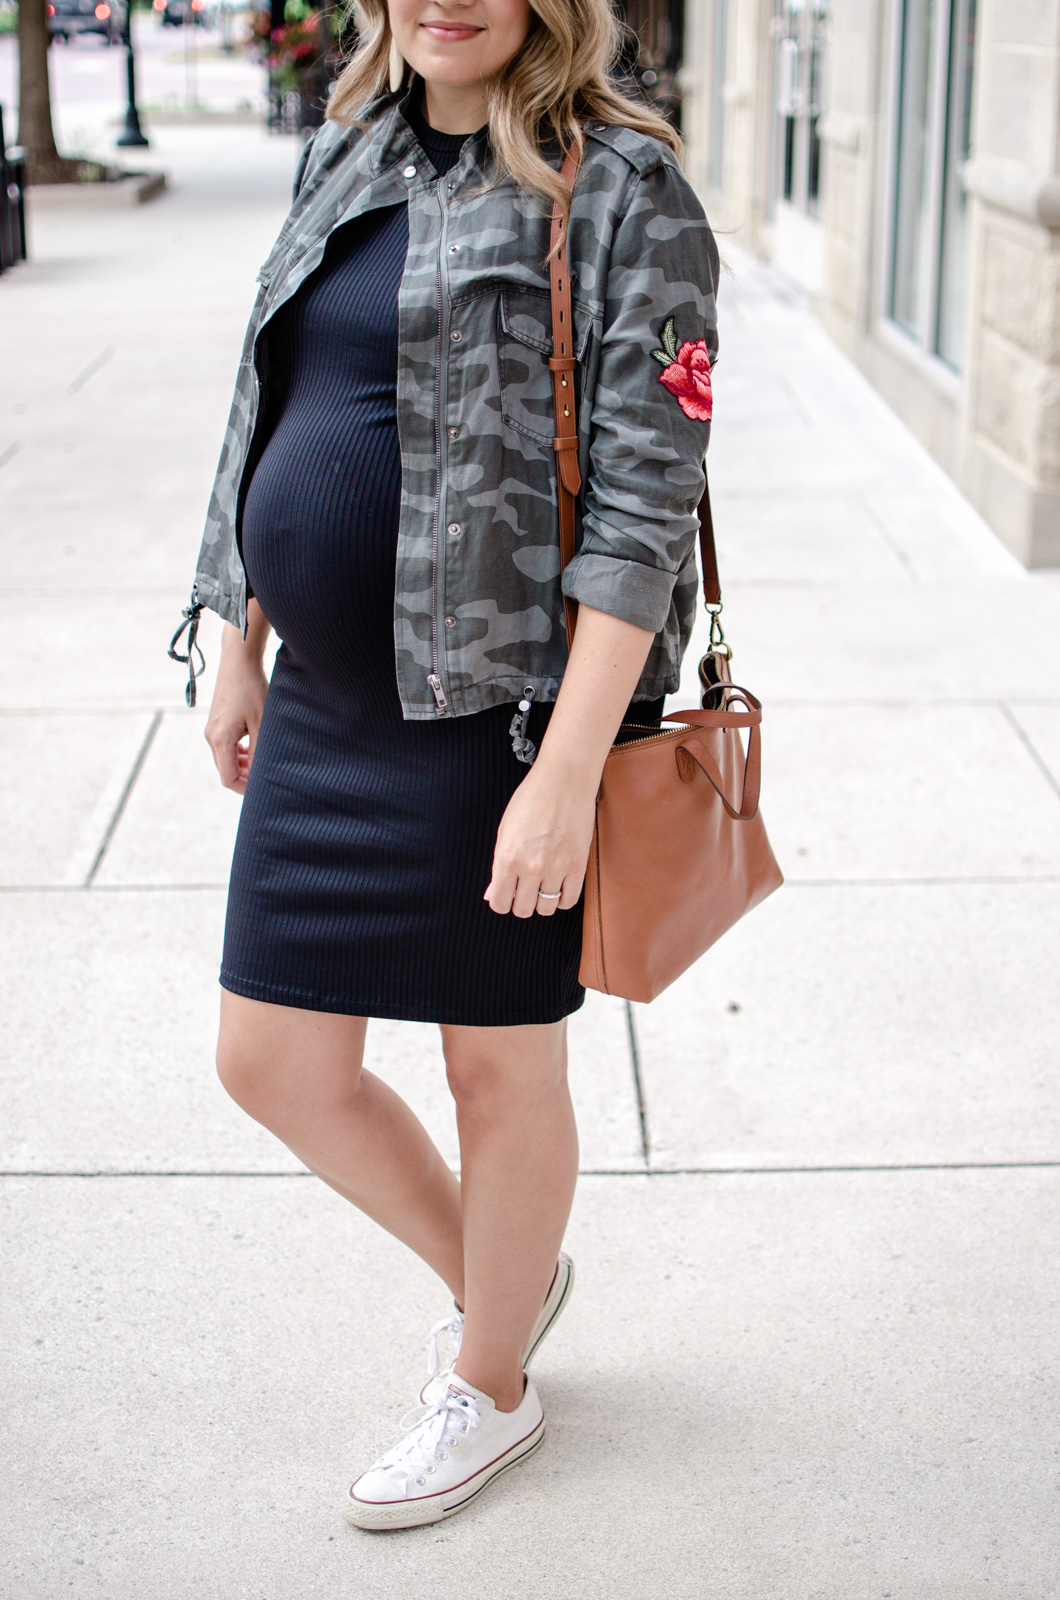 fall maternity outfit idea - what to wear fall pregnancy | bylaurenm.com